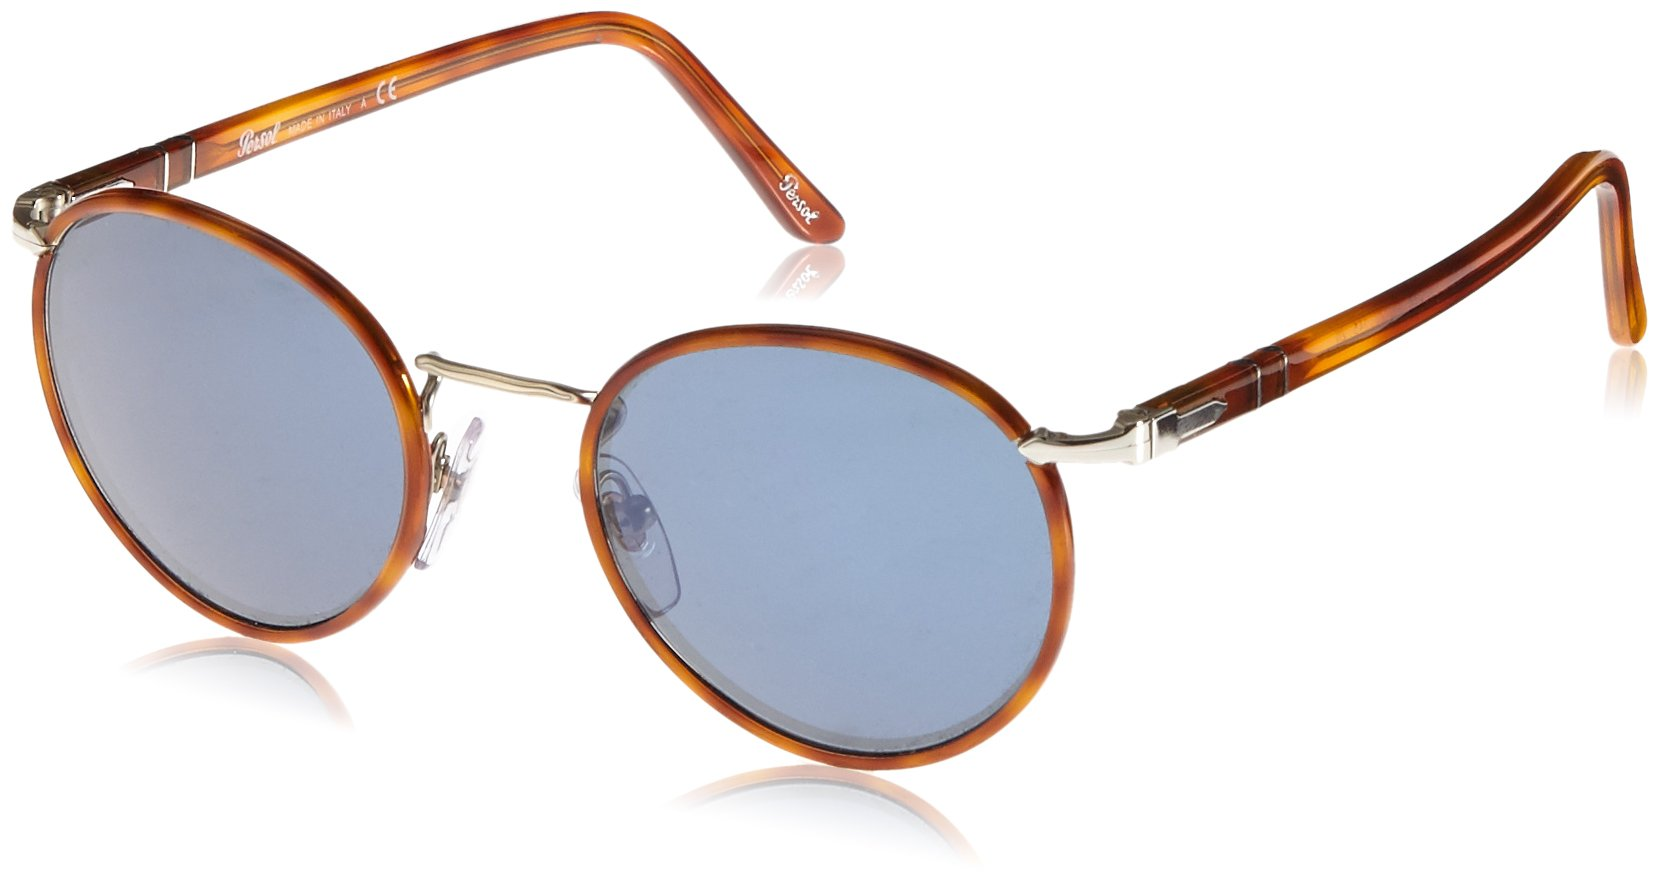 Persol LunettesOrgoldfarbenSmall De MmMontures Po2422sj 10615649 Homme jLqc5RS34A